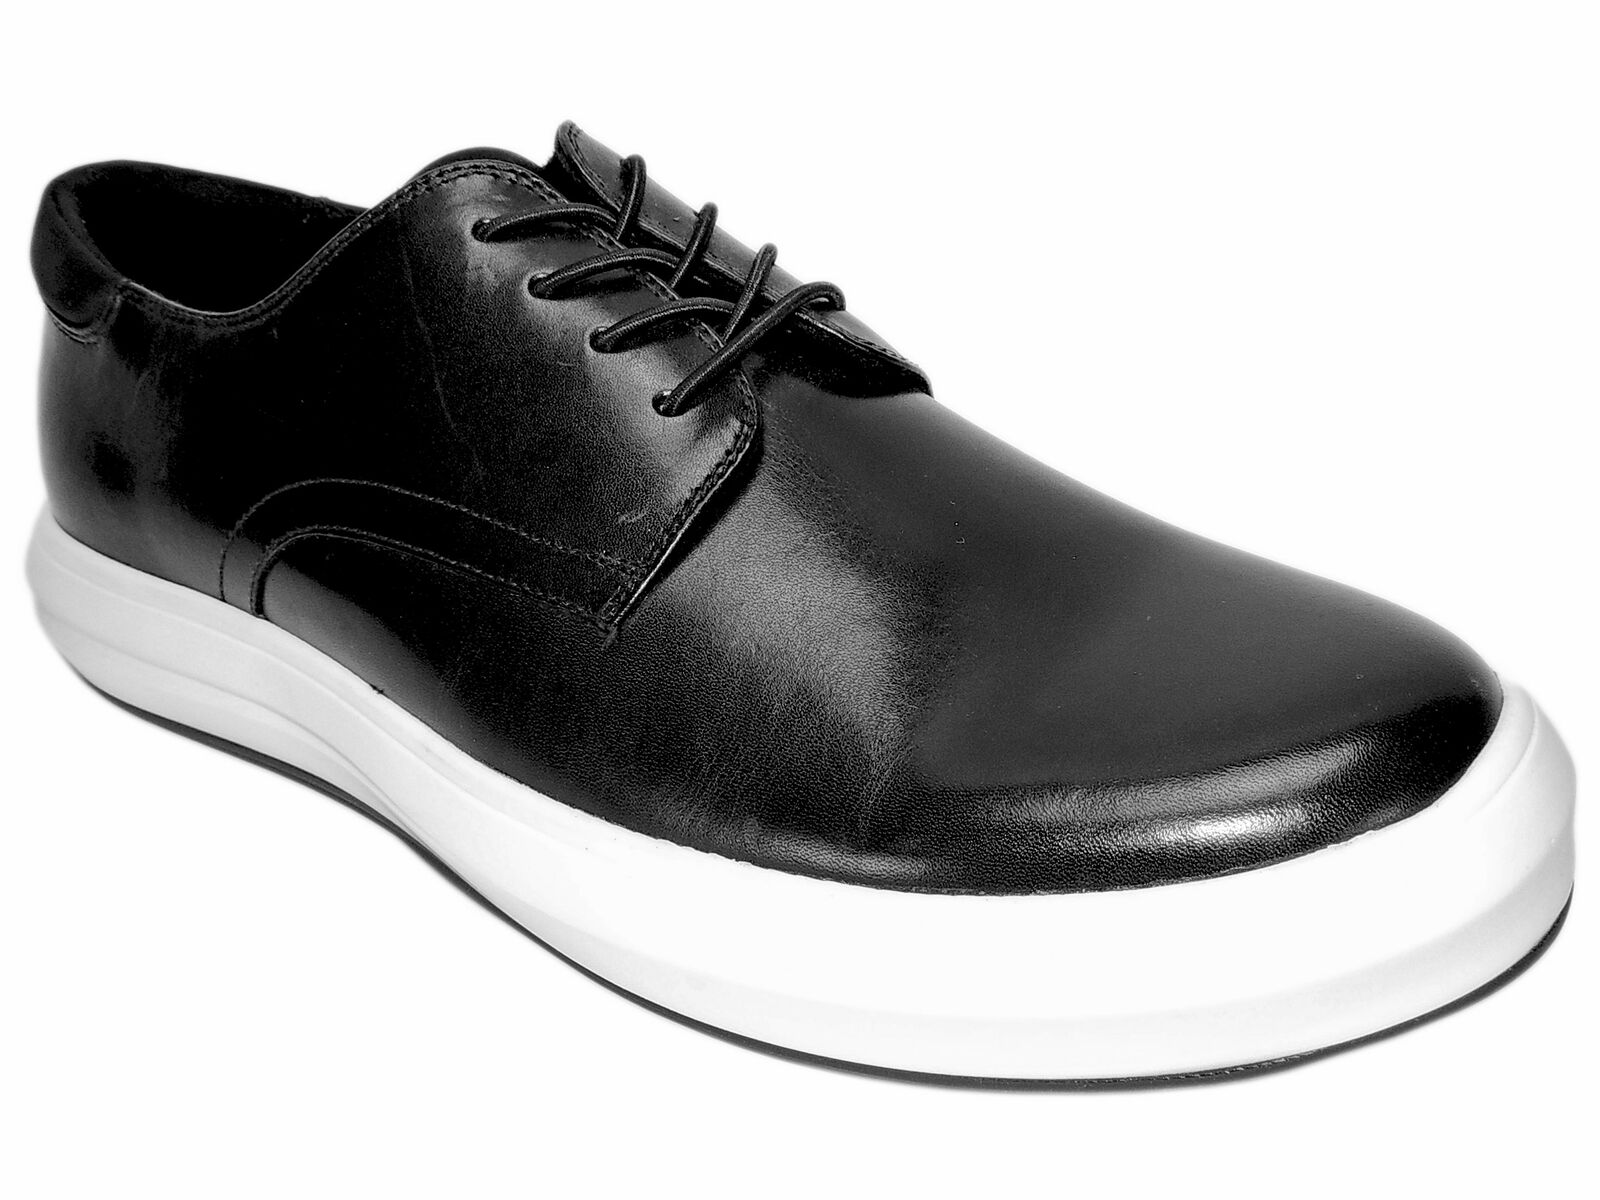 Kenneth Cole New York Men's The Mover Lace-Up Dress Sneakers Black Leather Sz 9M